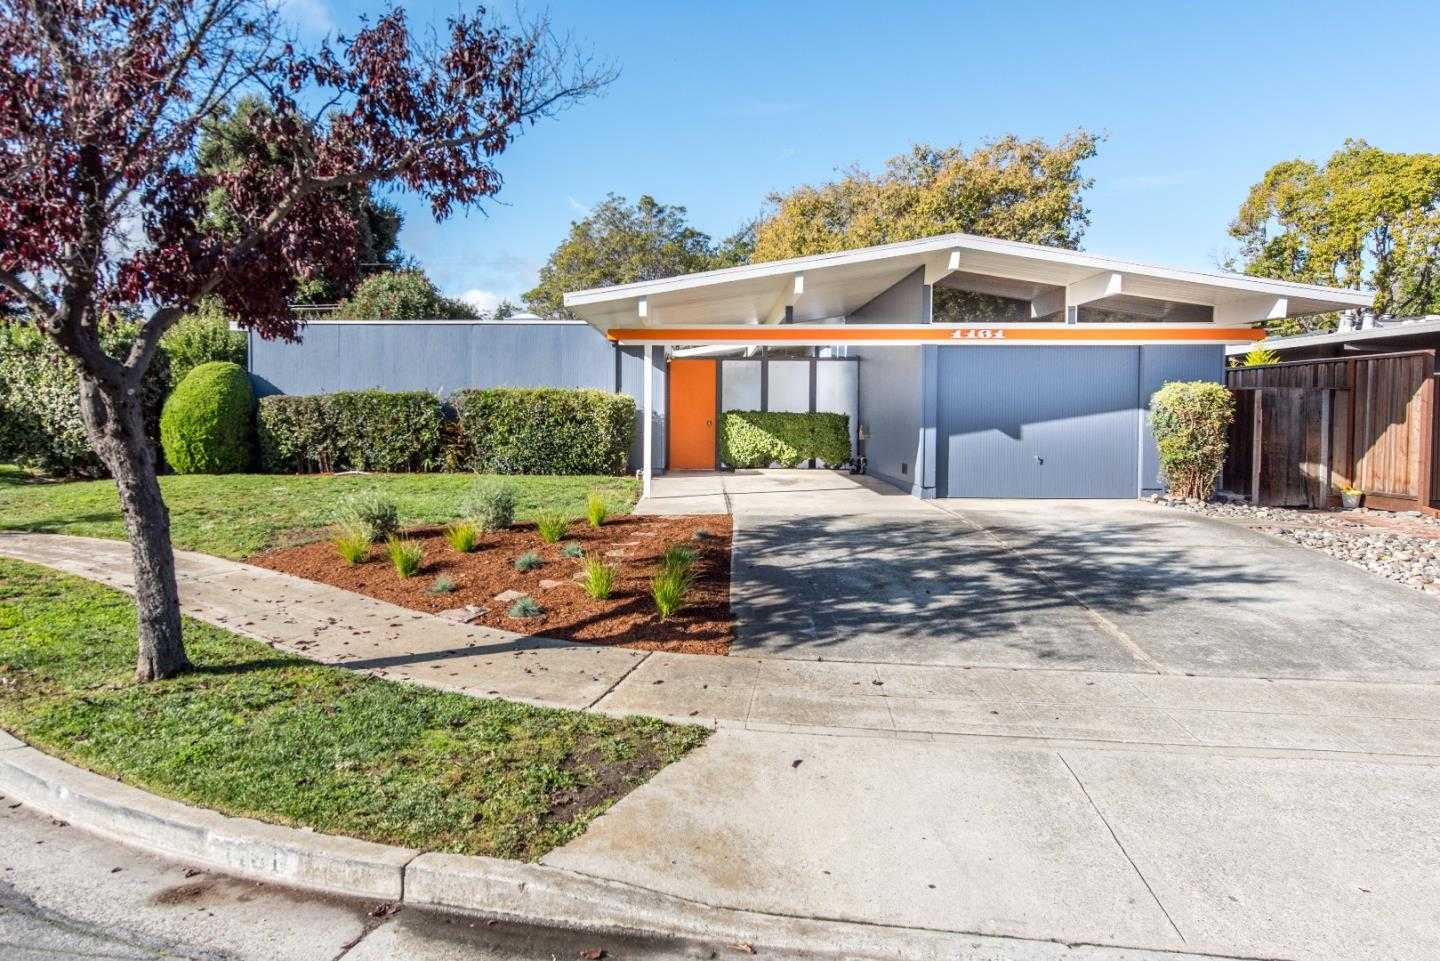 $1,748,000 - 4Br/2Ba -  for Sale in Sunnyvale